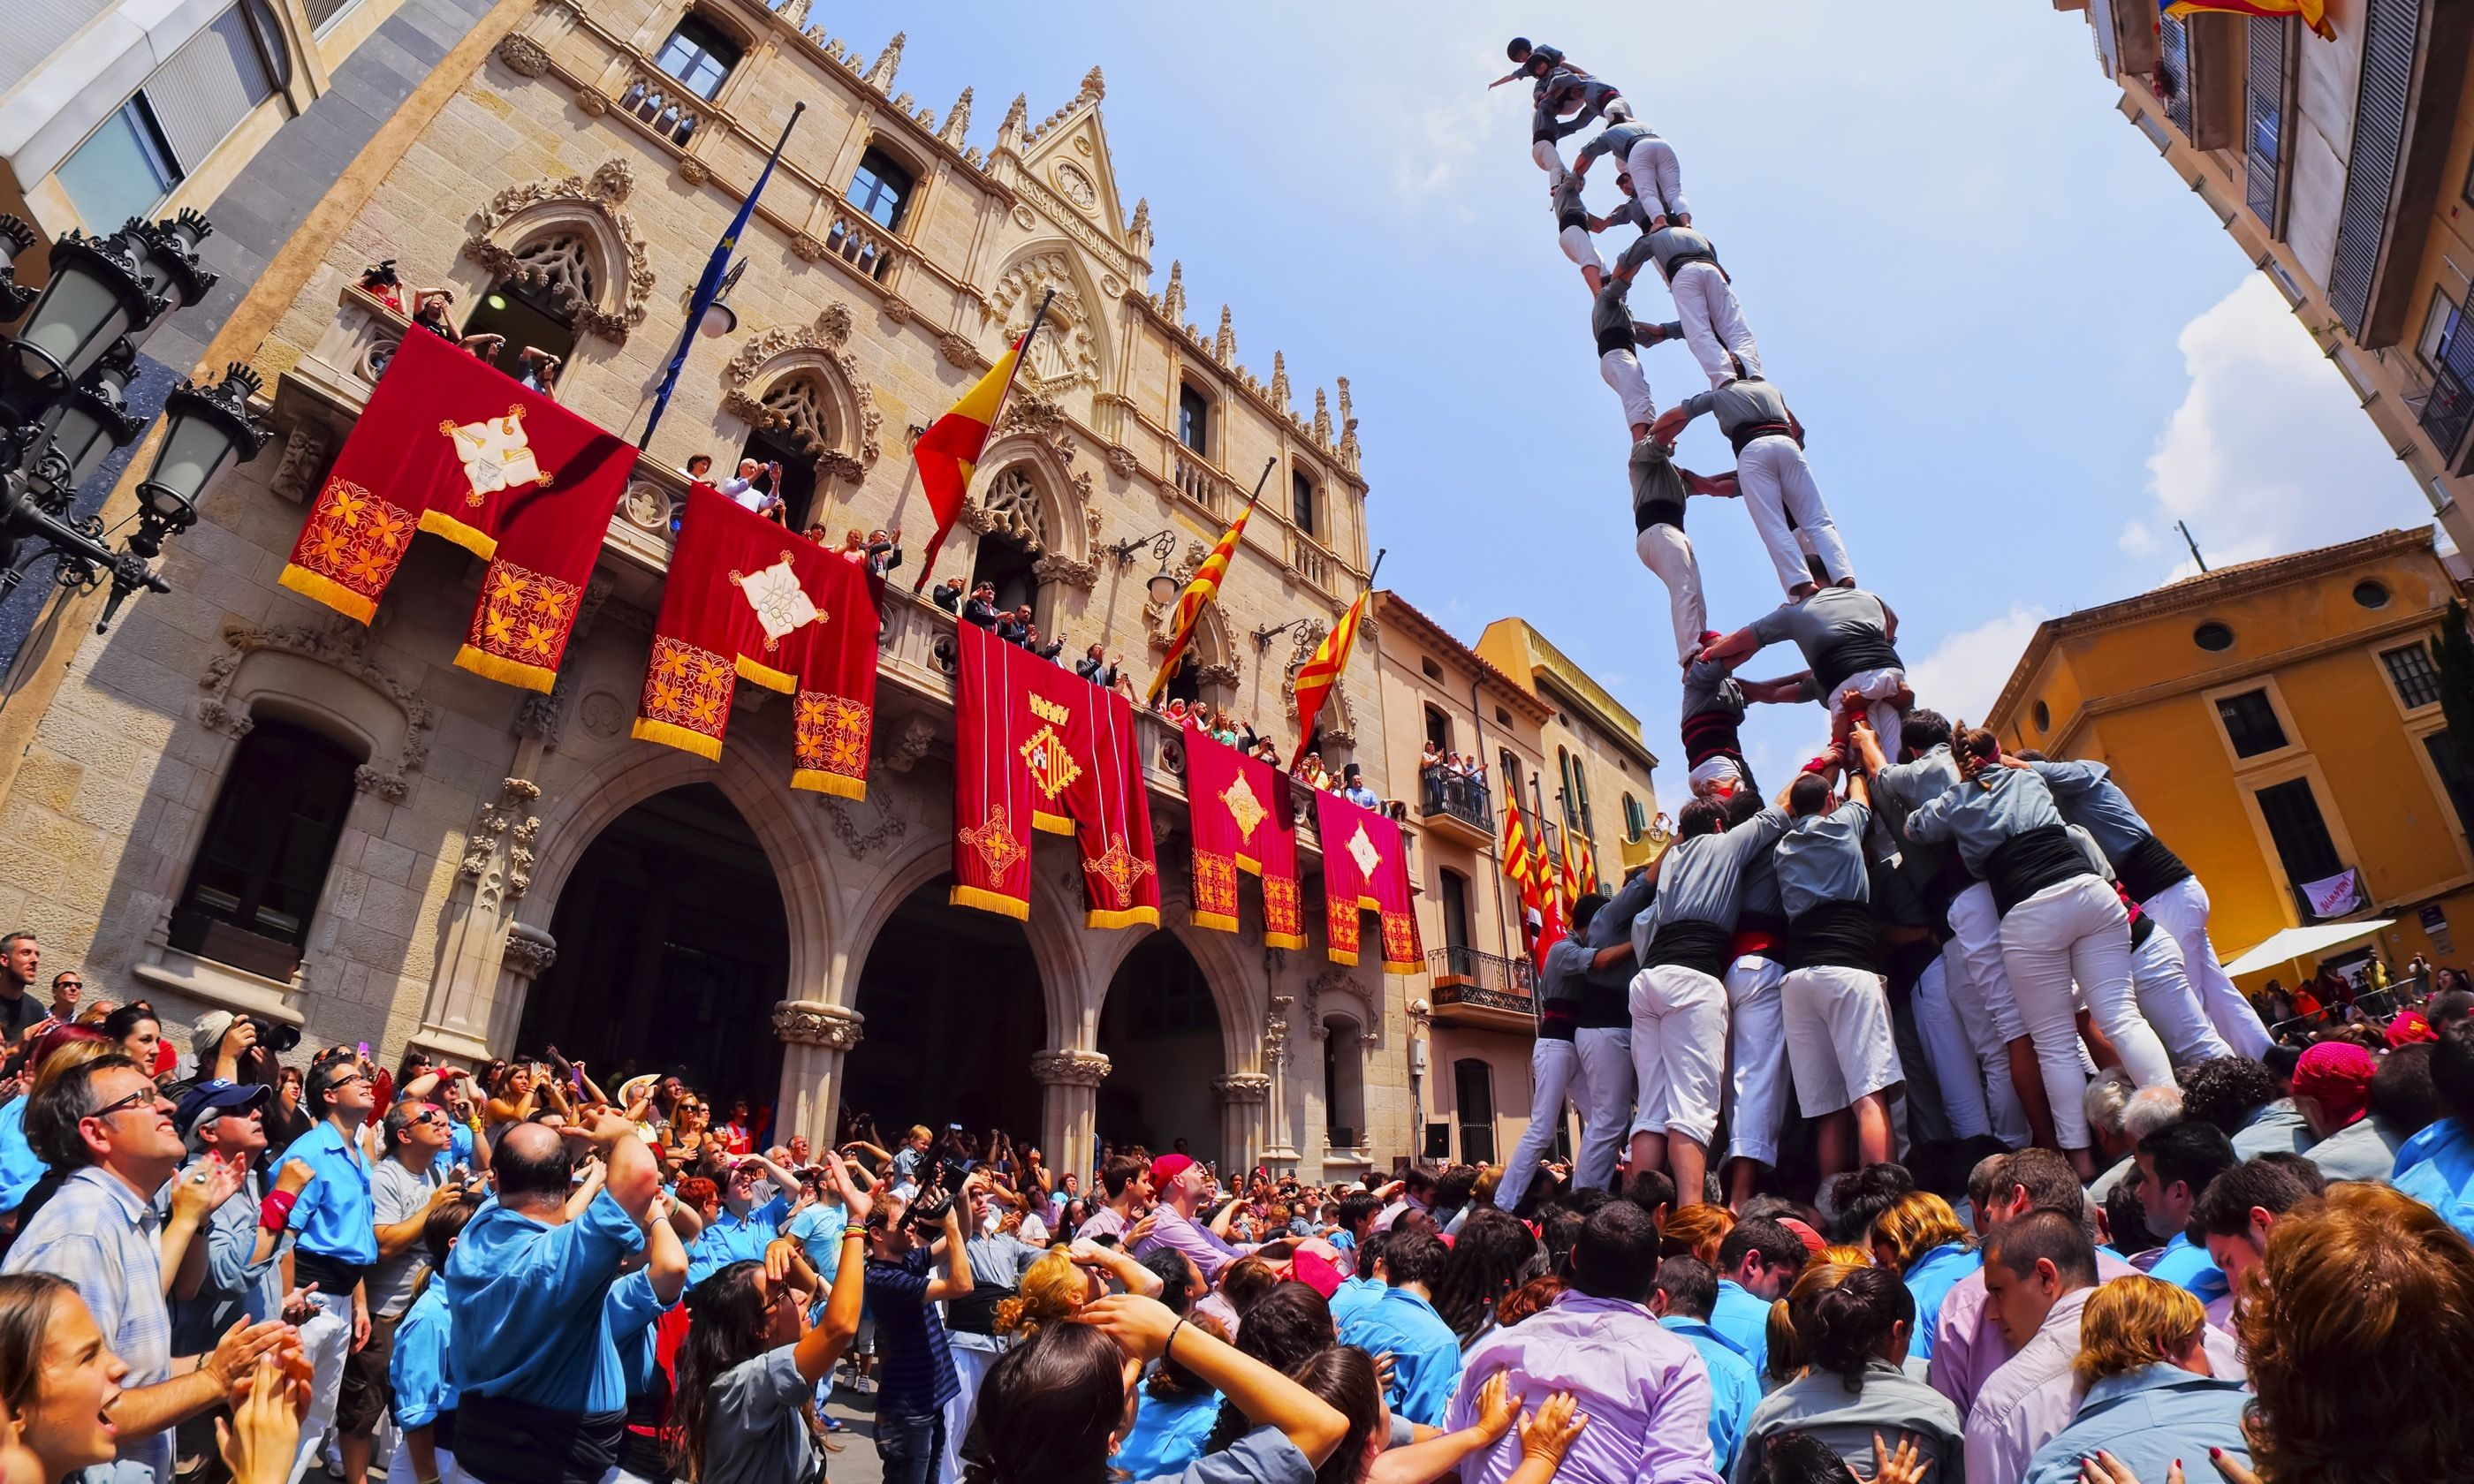 Human tower, Spain (Shutterstock.com)